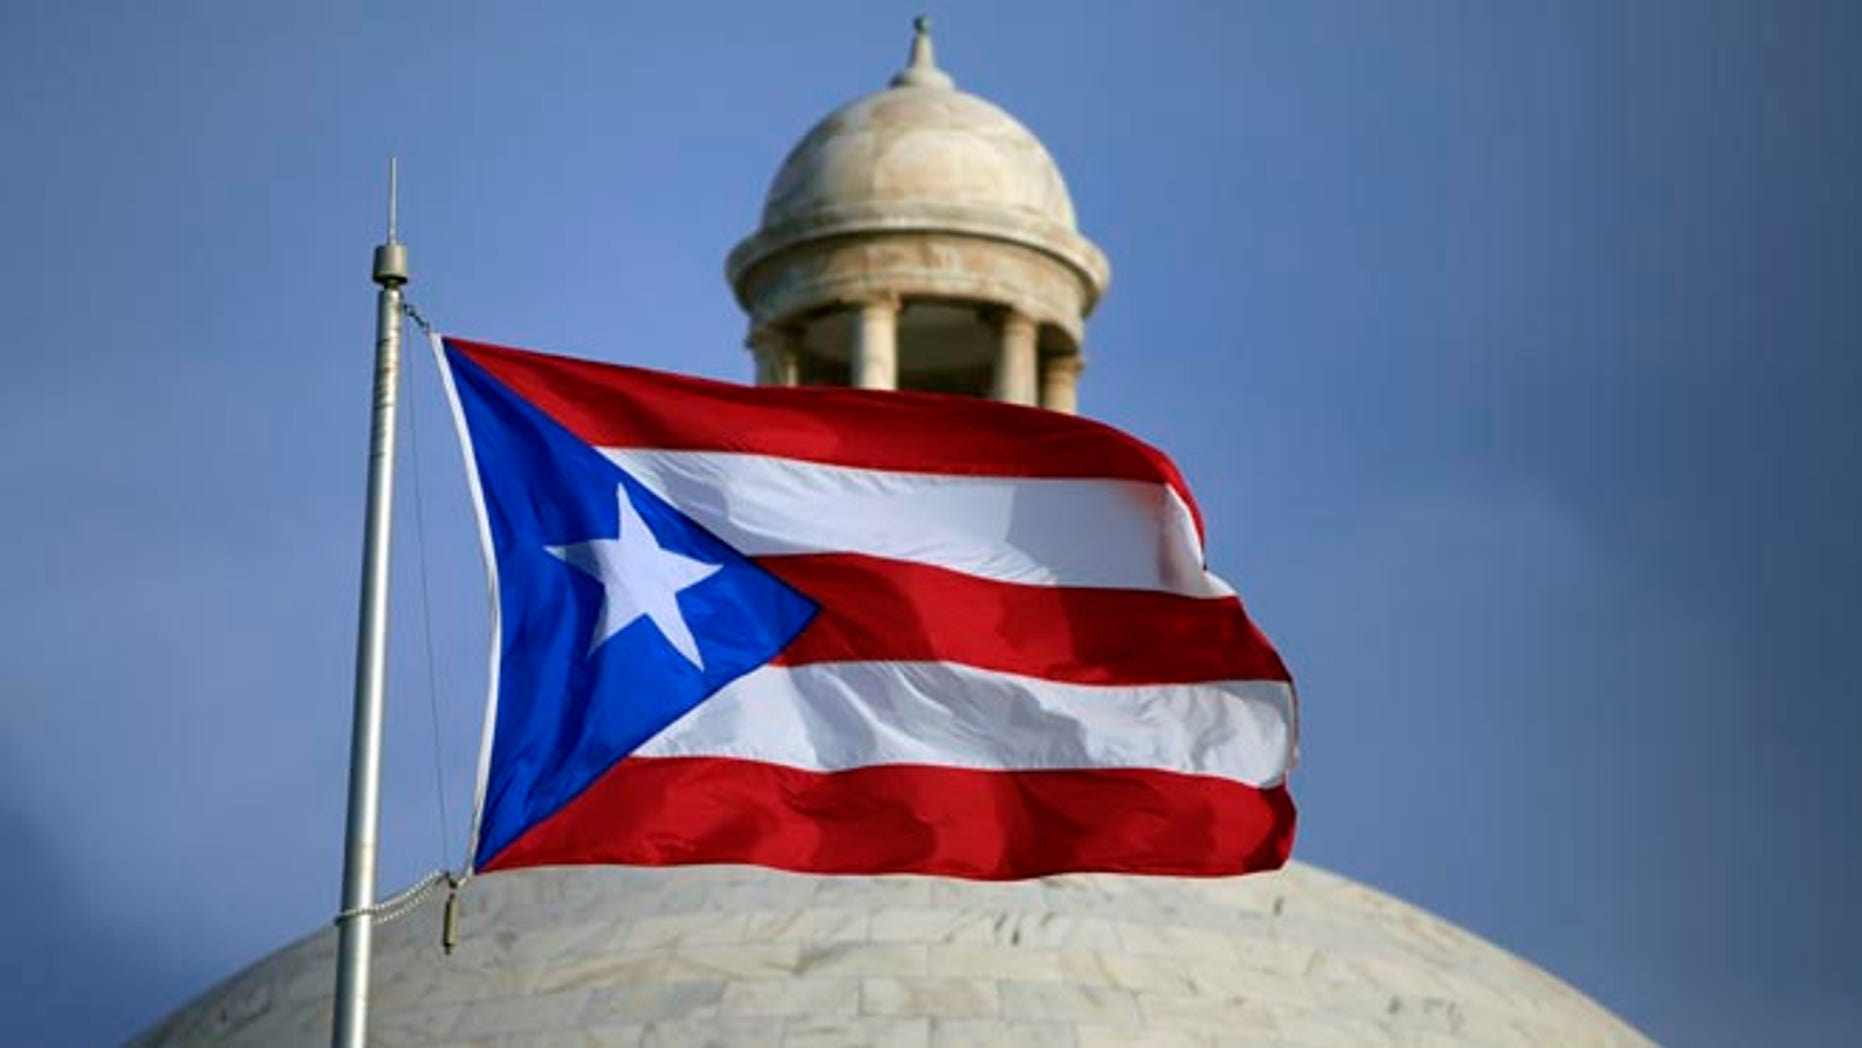 FILE - In this July 29, file 2015 photo, the Puerto Rican flag flies in front of Puerto Rico's Capitol as in San Juan, Puerto Rico. Congress edged closer to delivering relief to debt-stricken Puerto Rico as the Senate on Wednesday, June 29, 2016, cleared the way for passage of a last-minute financial rescue package for the territory of 3.5 million Americans. (AP Photo/Ricardo Arduengo, File)